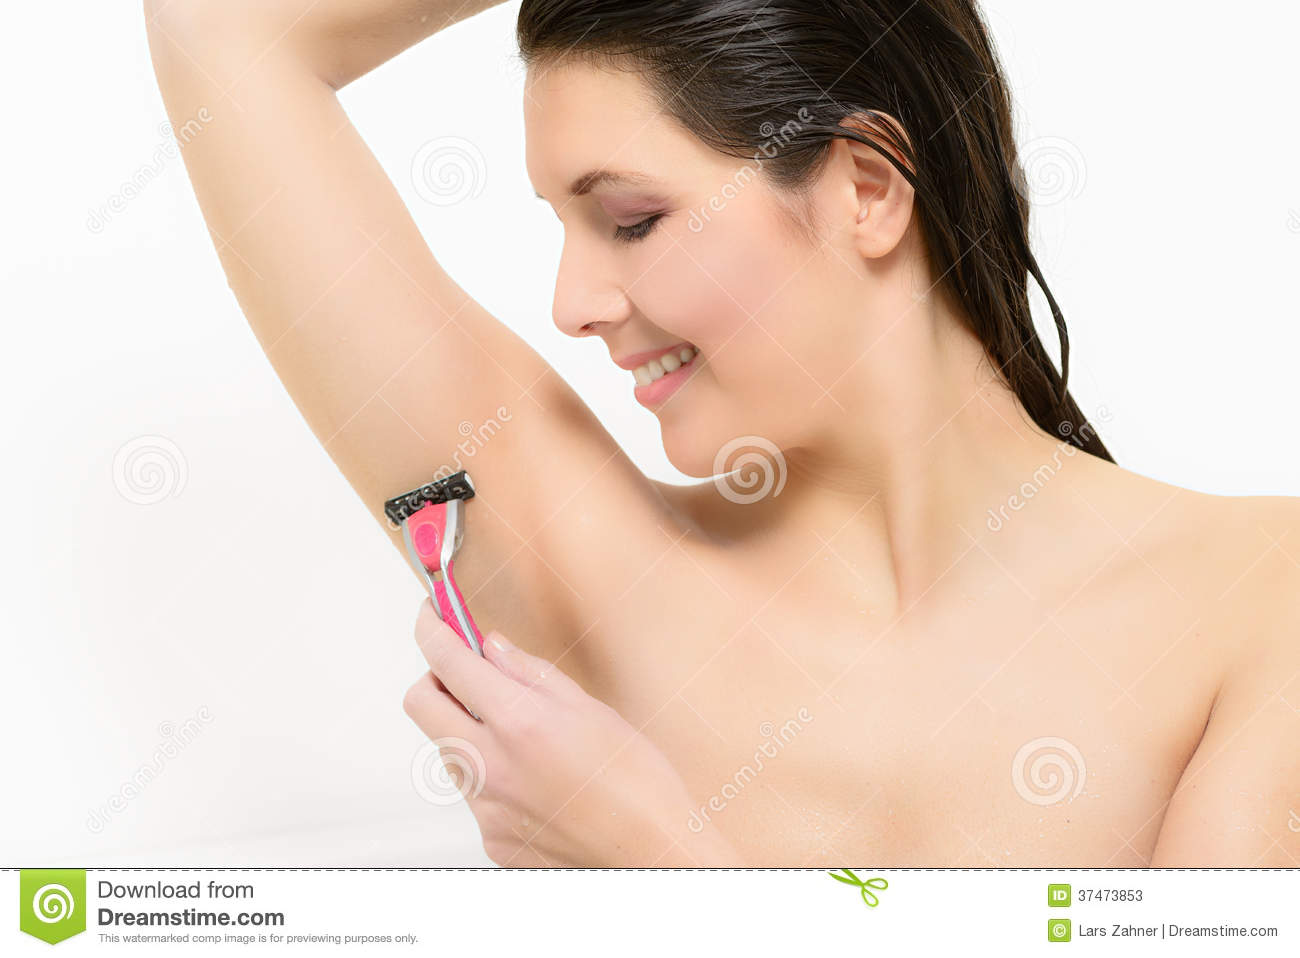 female shaved armpits and pussies